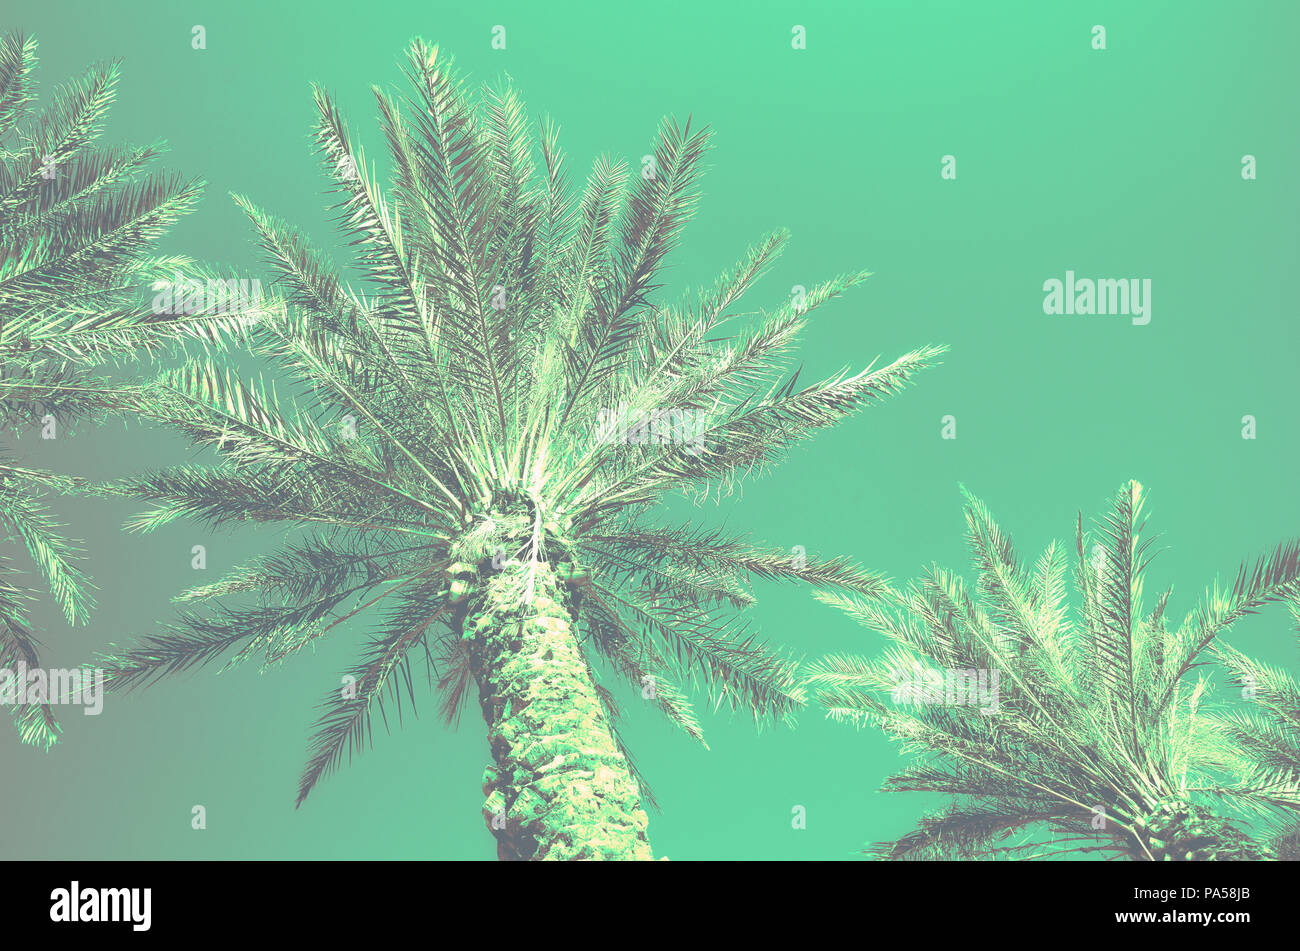 Palms with turquoise pop art effect  Vintage stylized photo